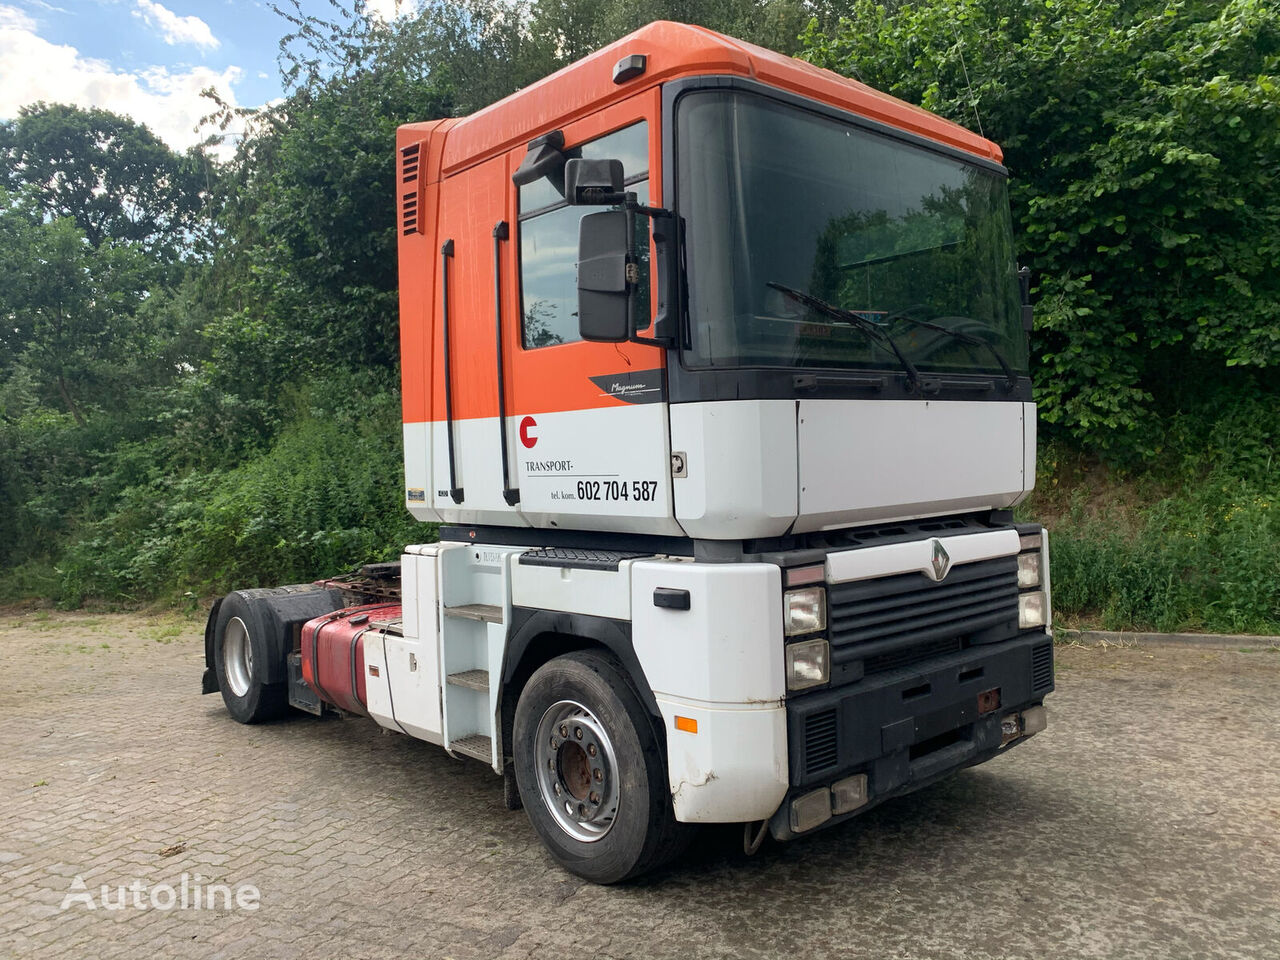 RENAULT Magnum 430 4x2 manual pump manual gear delivered to Hamburg Sattelzugmaschine